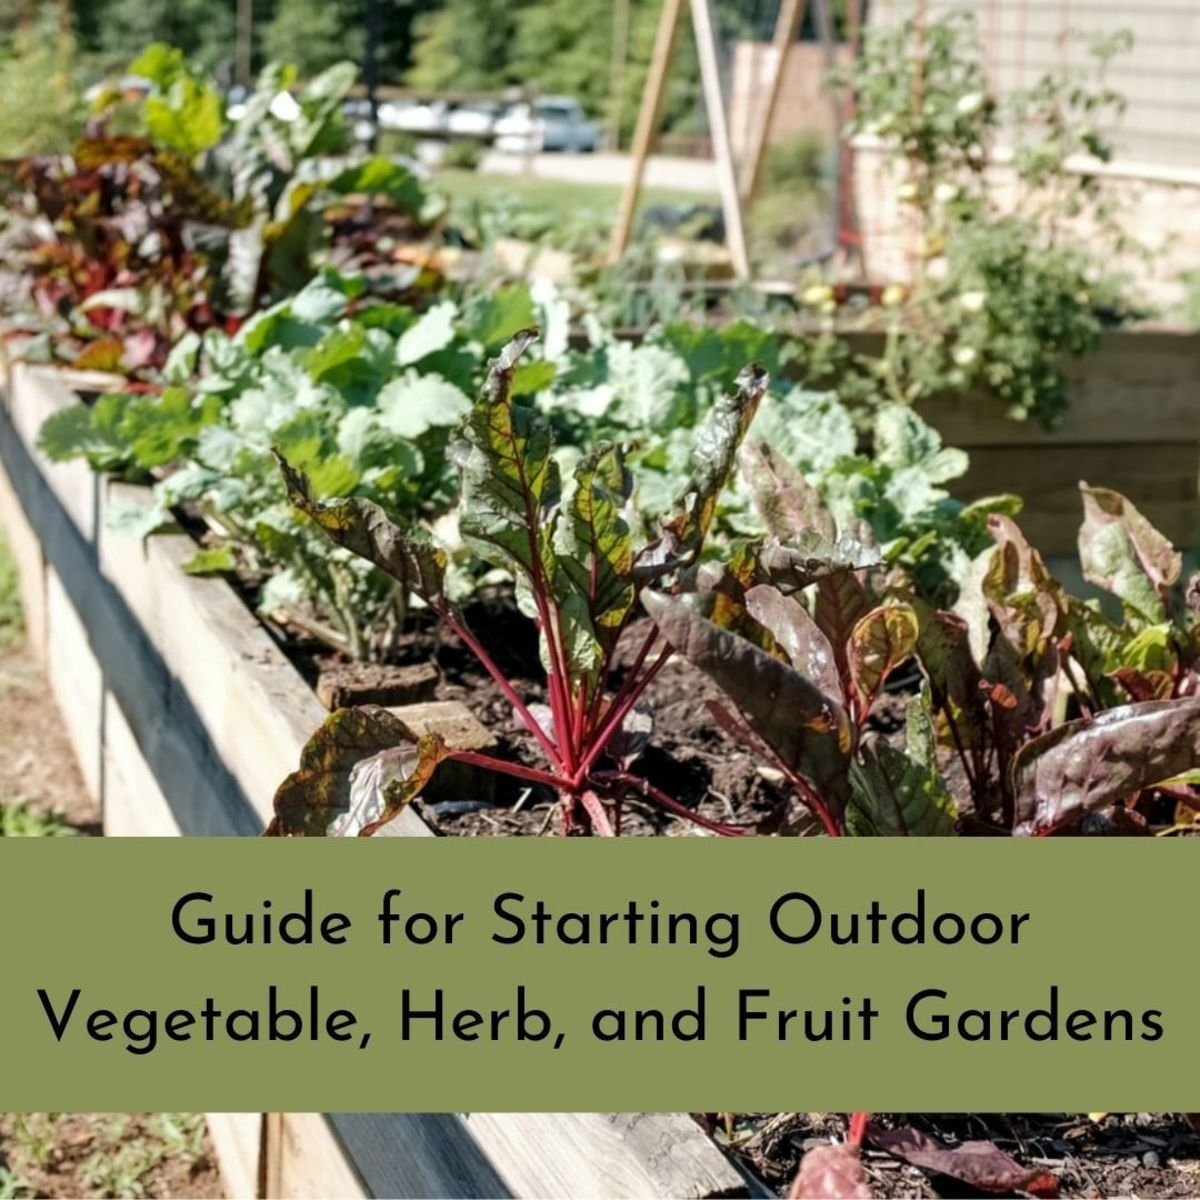 The spring is when outdoor gardens need to be planted and nurtured.